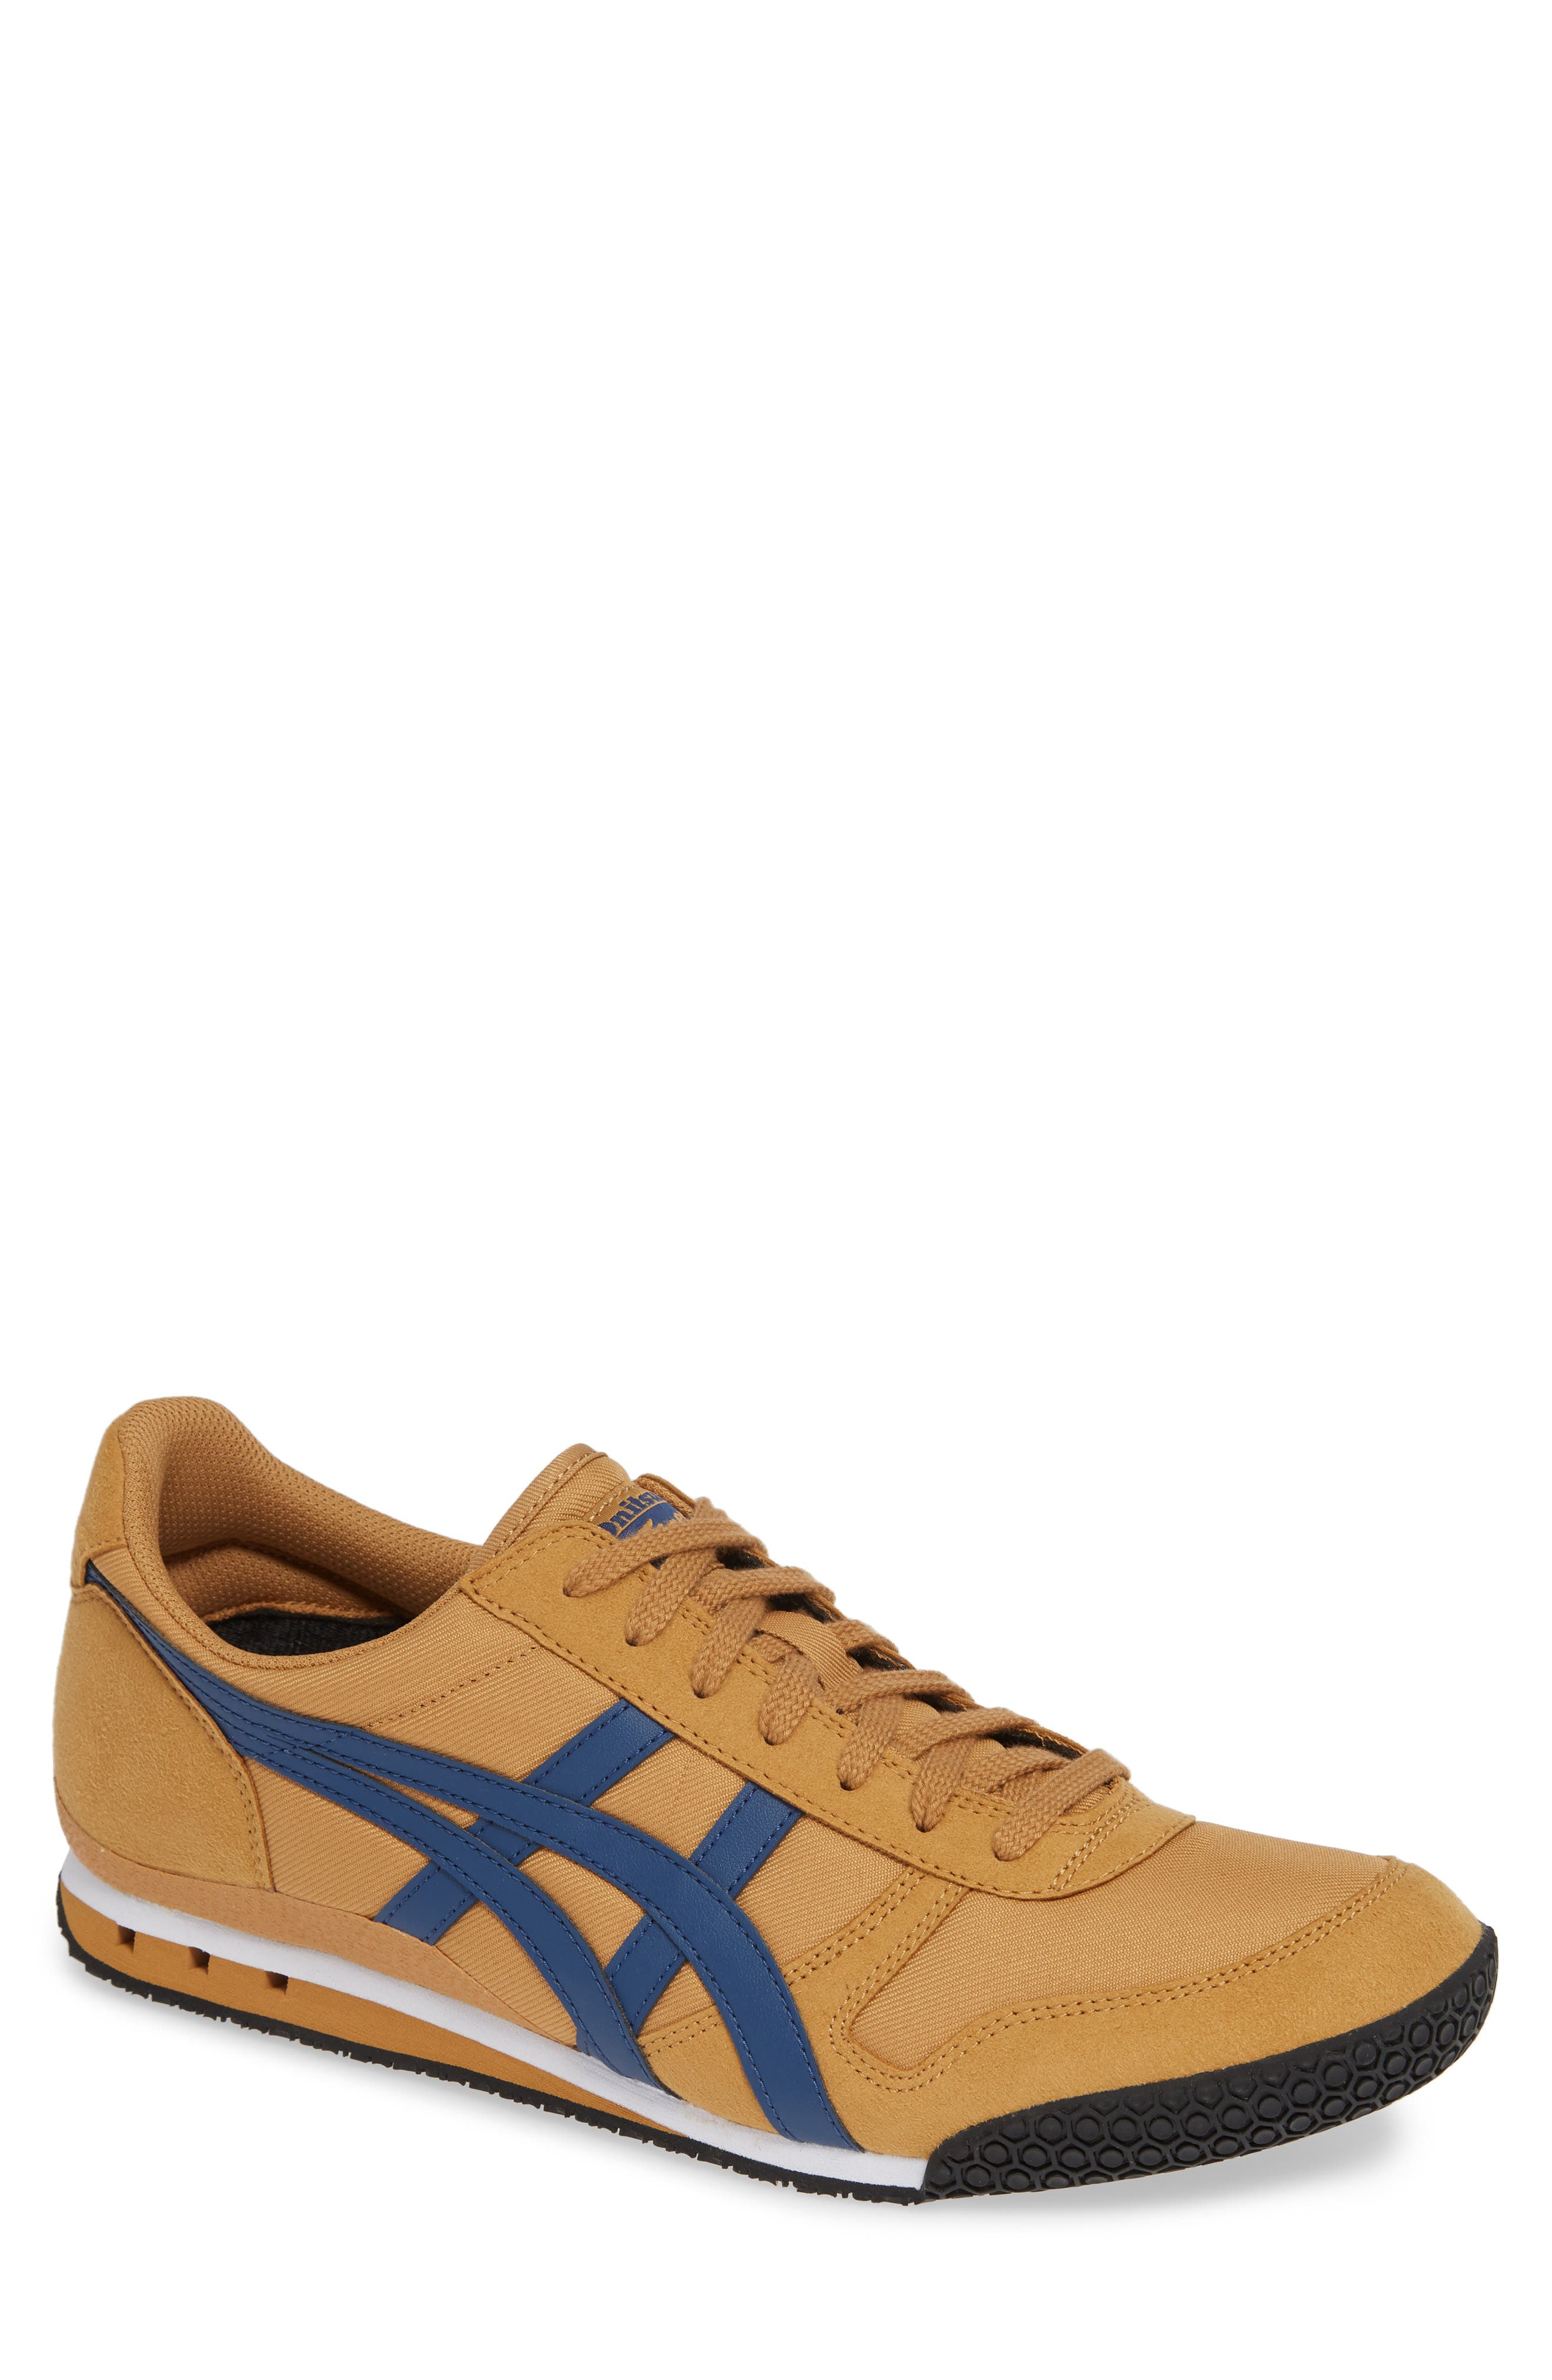 Onitsuka Tiger<sup>™</sup> Ultimate 81<sup>™</sup> Sneaker,                             Main thumbnail 1, color,                             200